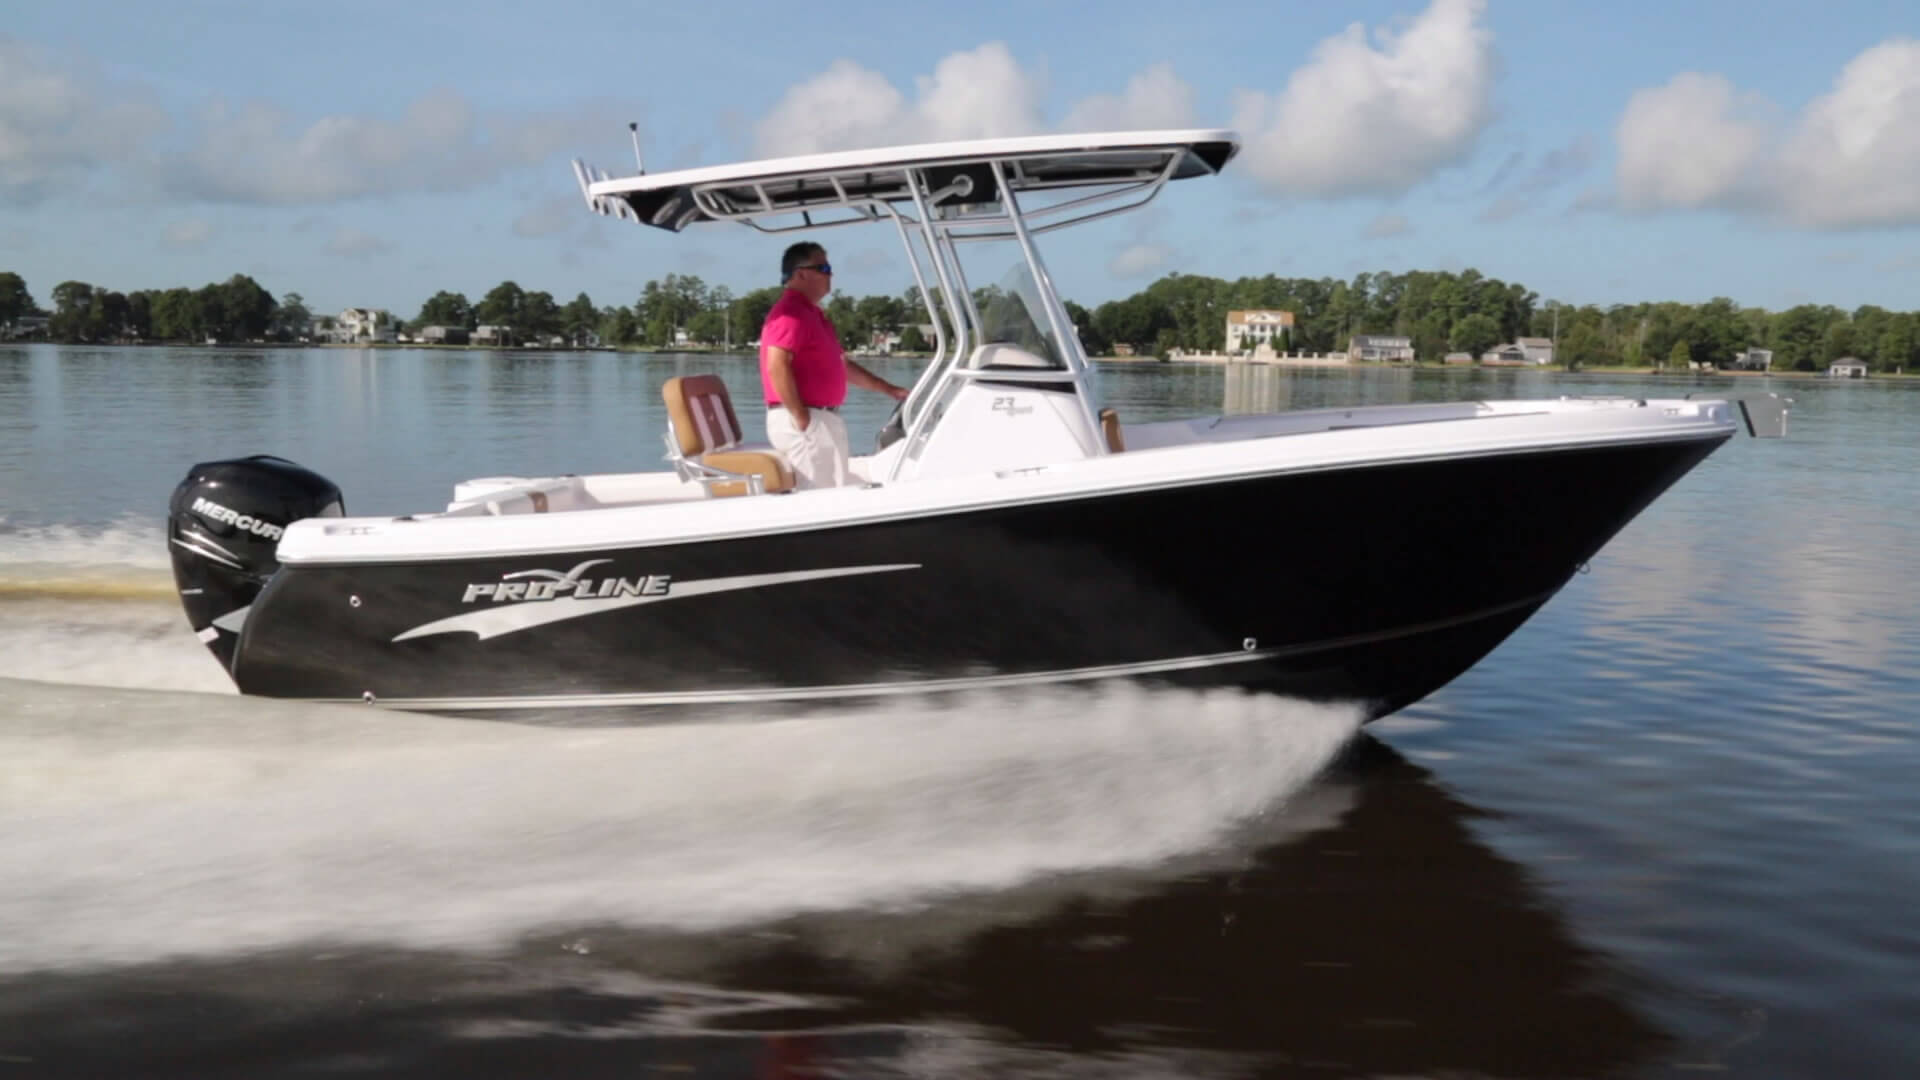 Pro-Line Boats | Manufacturer of Quality Pleasure & Fishing Boats | USA